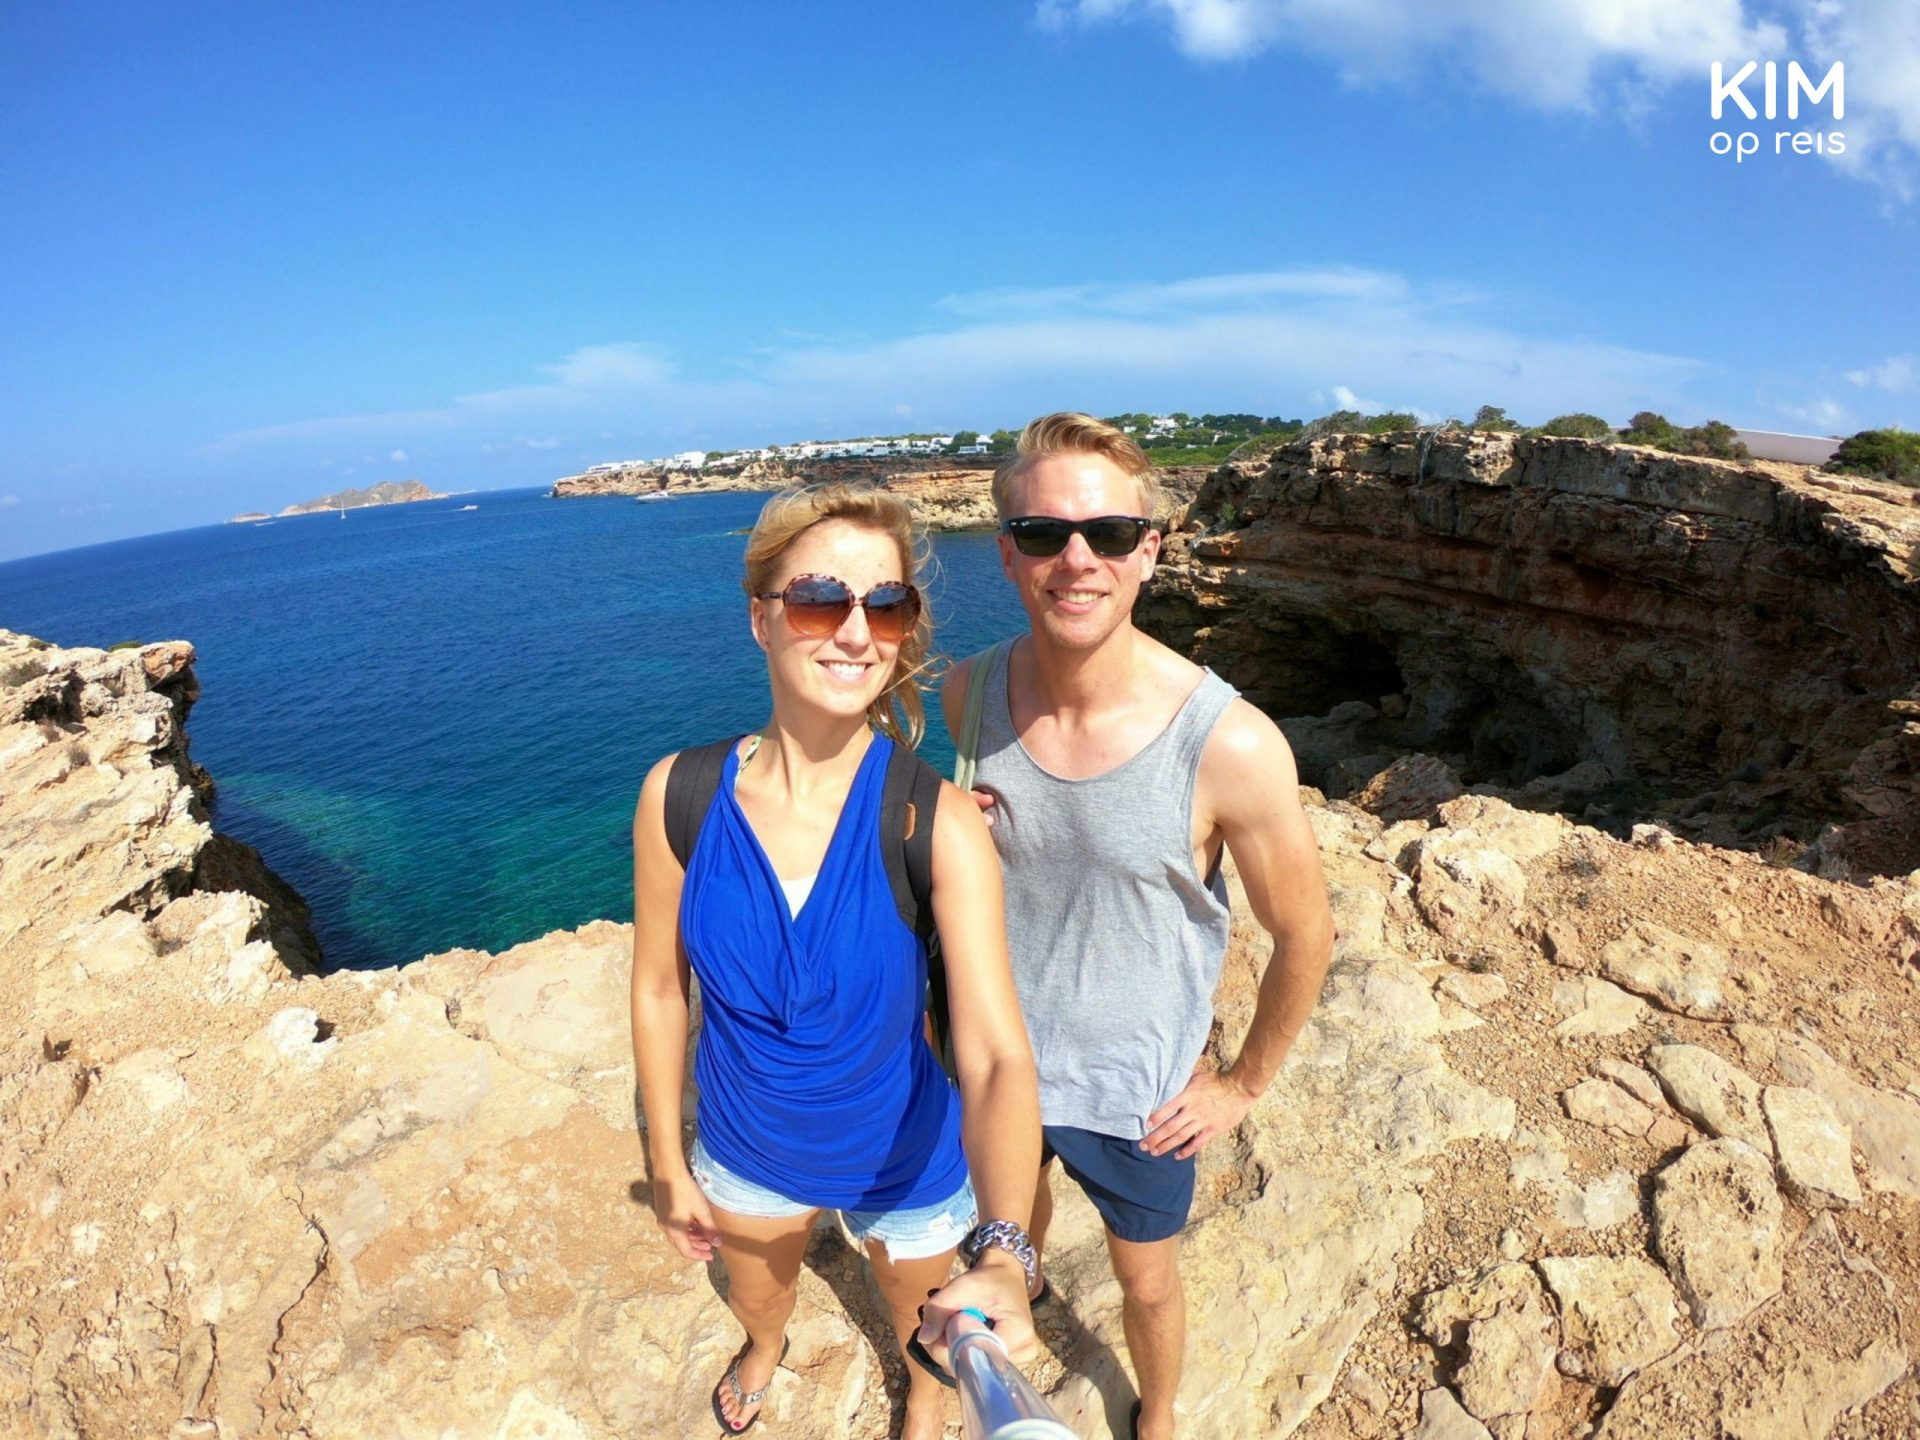 Selfie Stonehenge Ibiza : Kim and Patrick pose with the blue ocean on the background